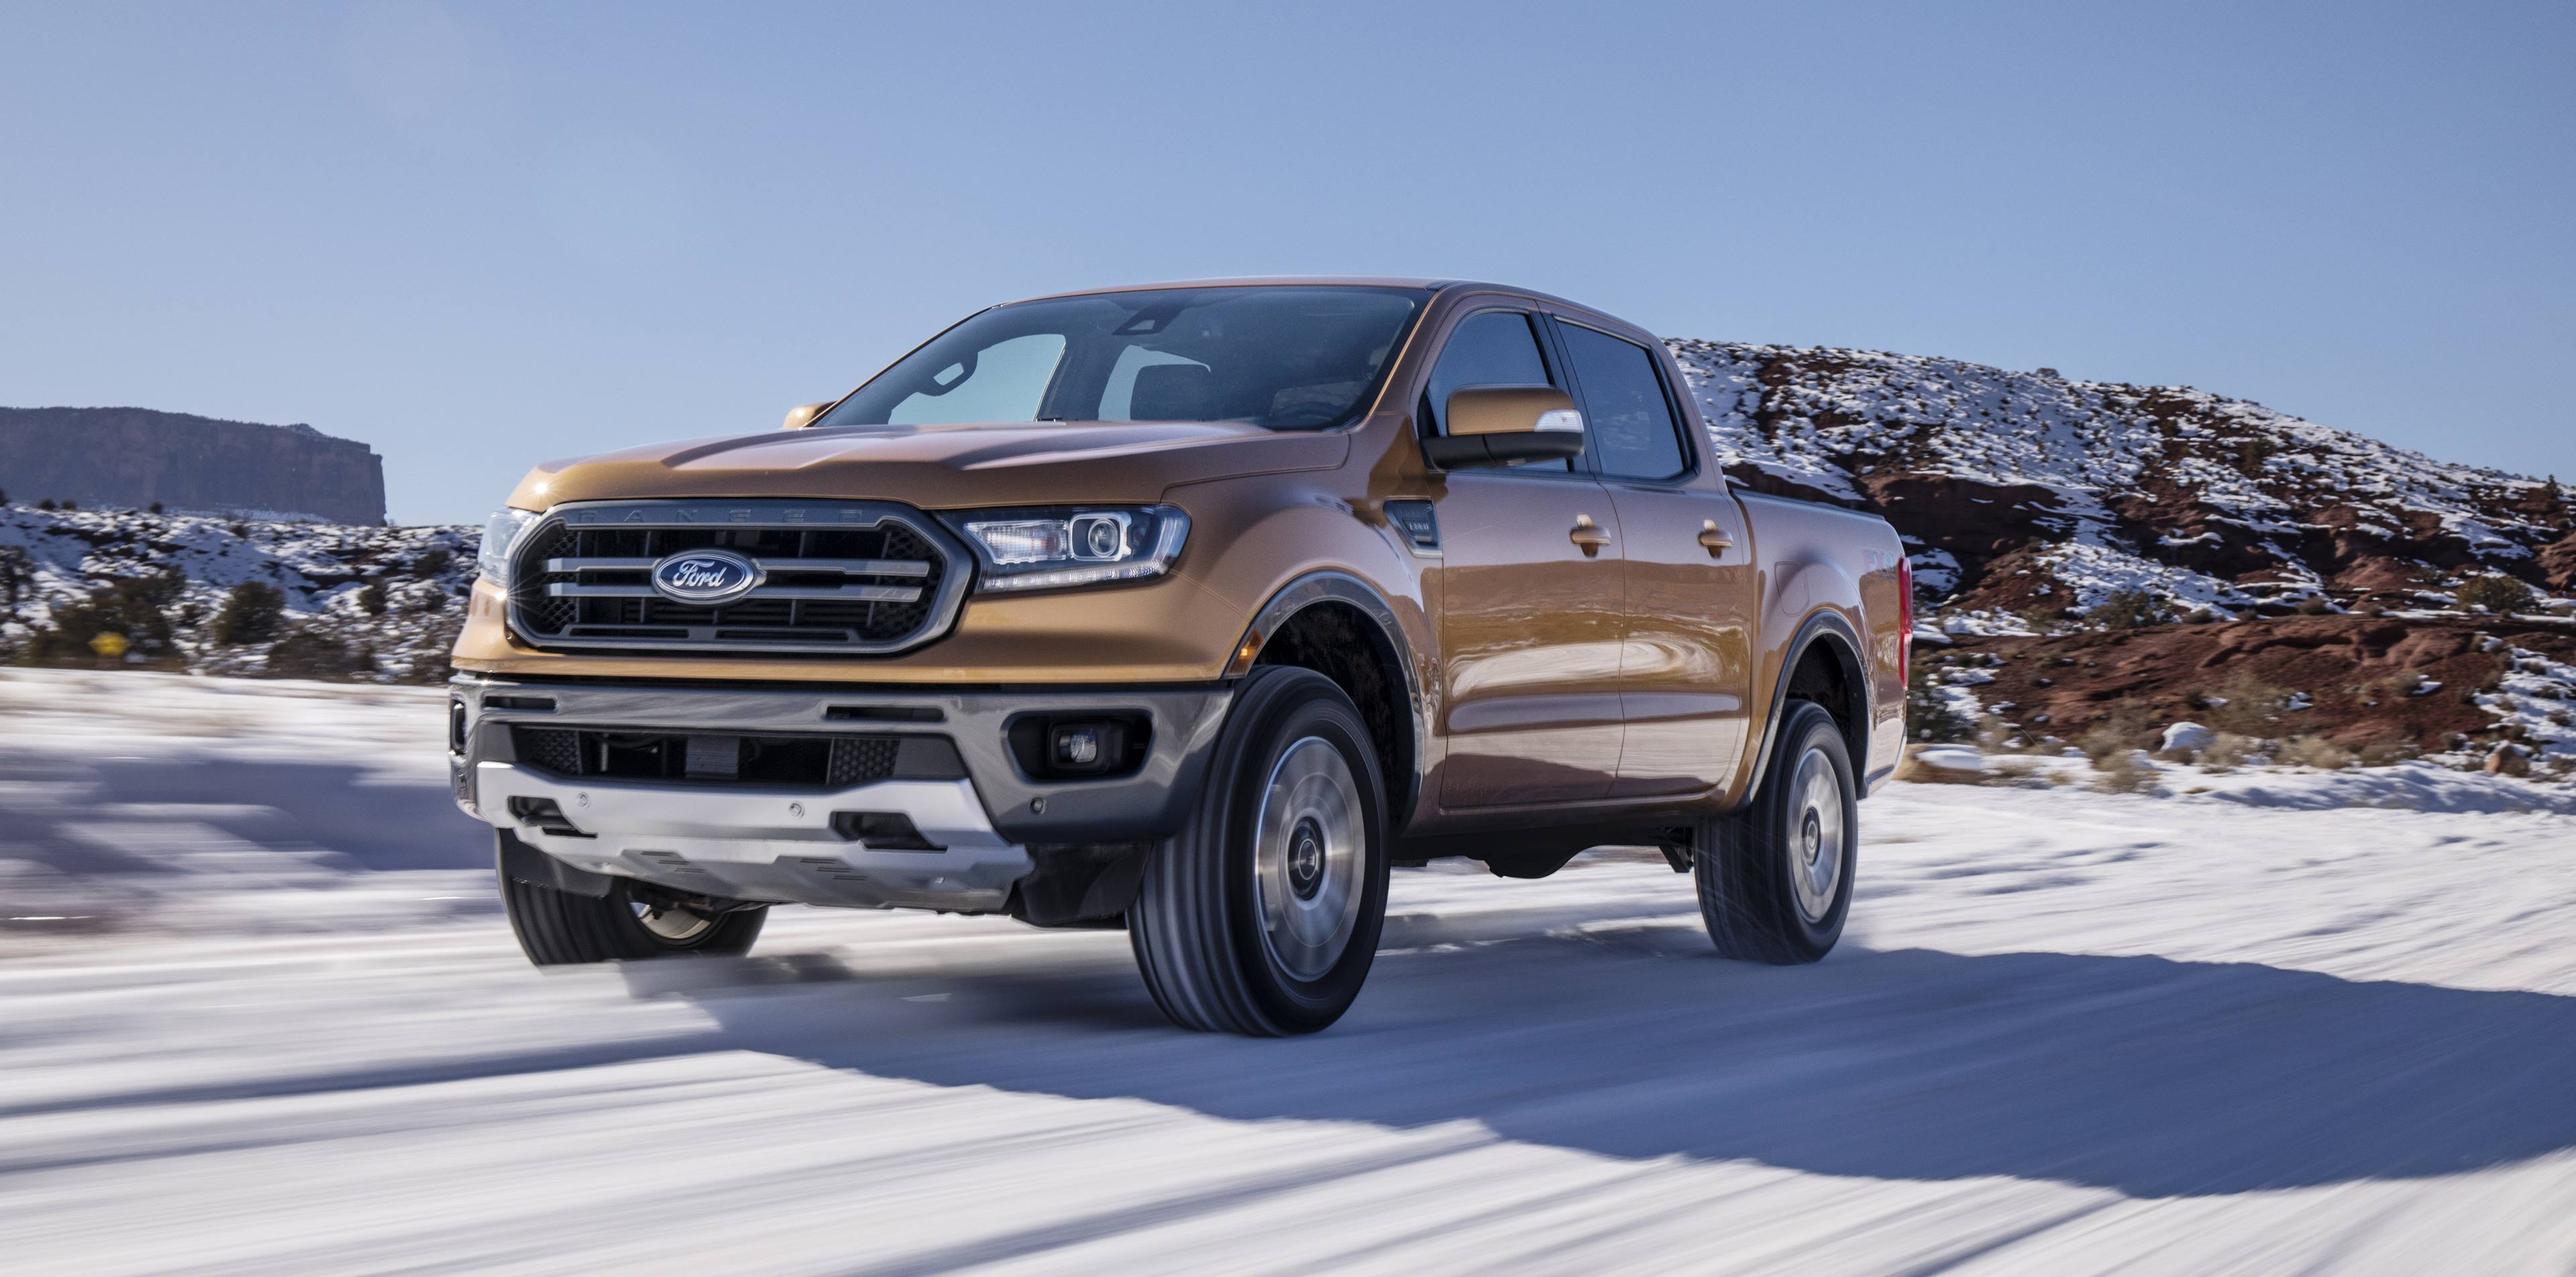 2019 Ford Ranger driving in the snow